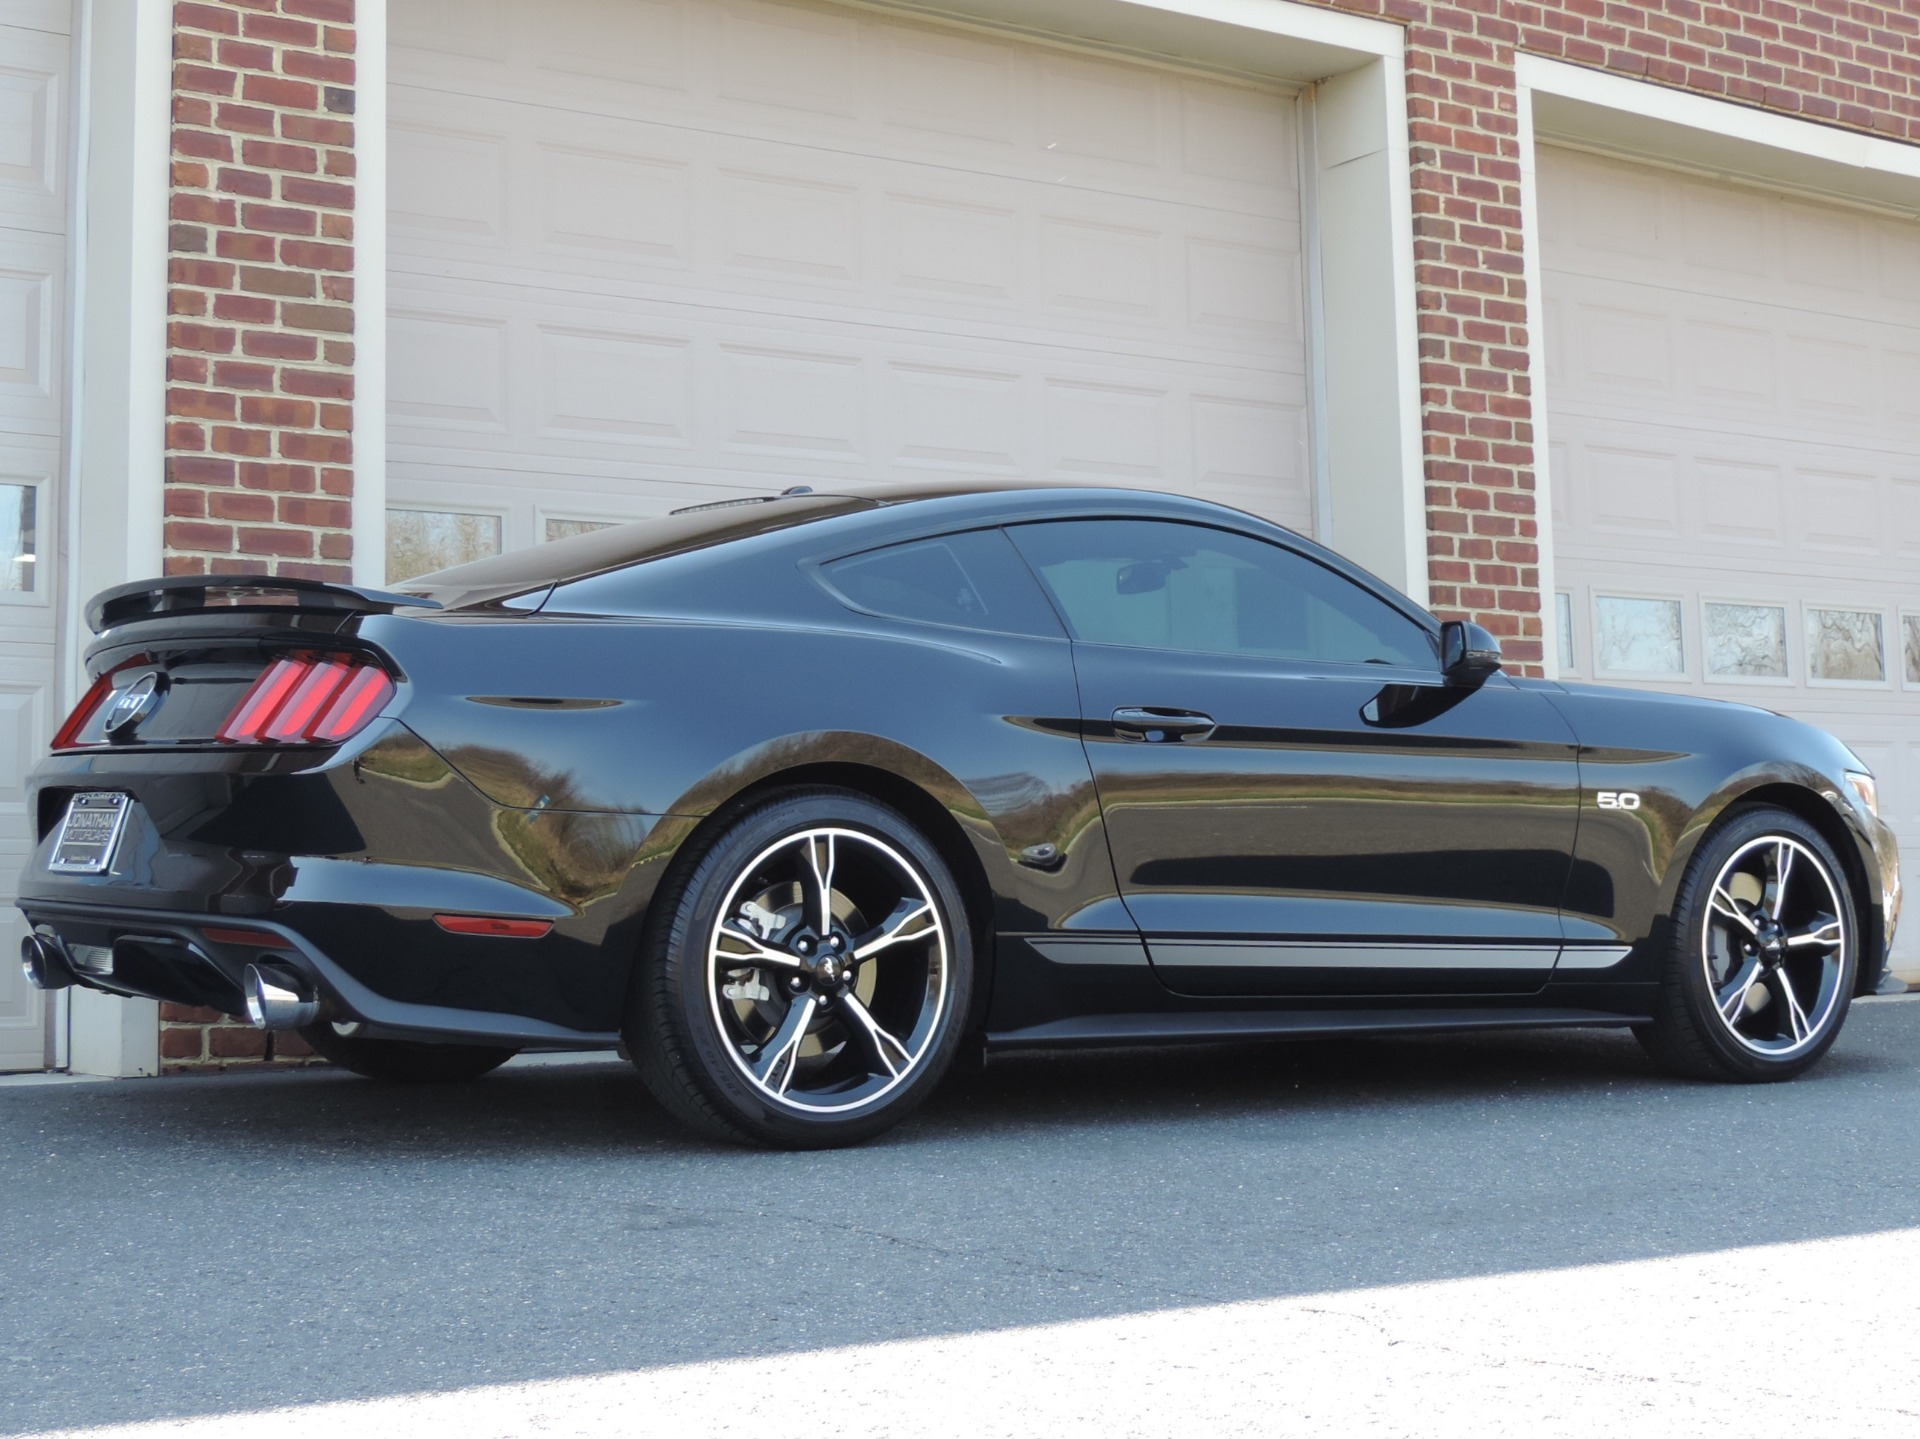 Ford Dealers Nj >> 2017 Ford Mustang GT Premium California Special Stock ...